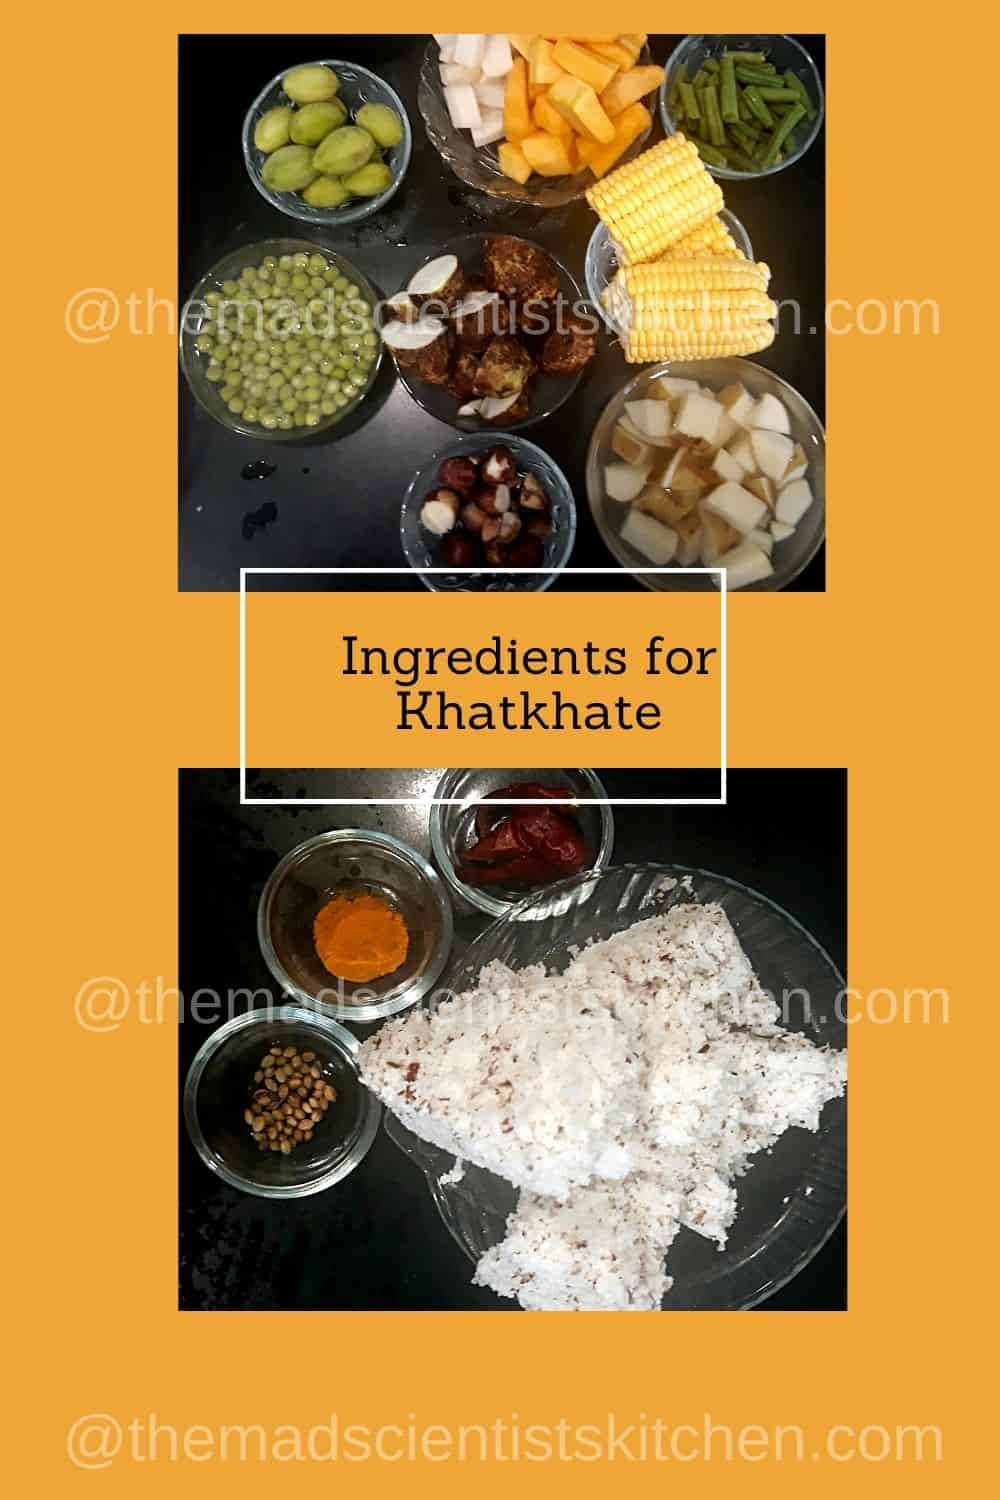 ingredients for Khatkhate